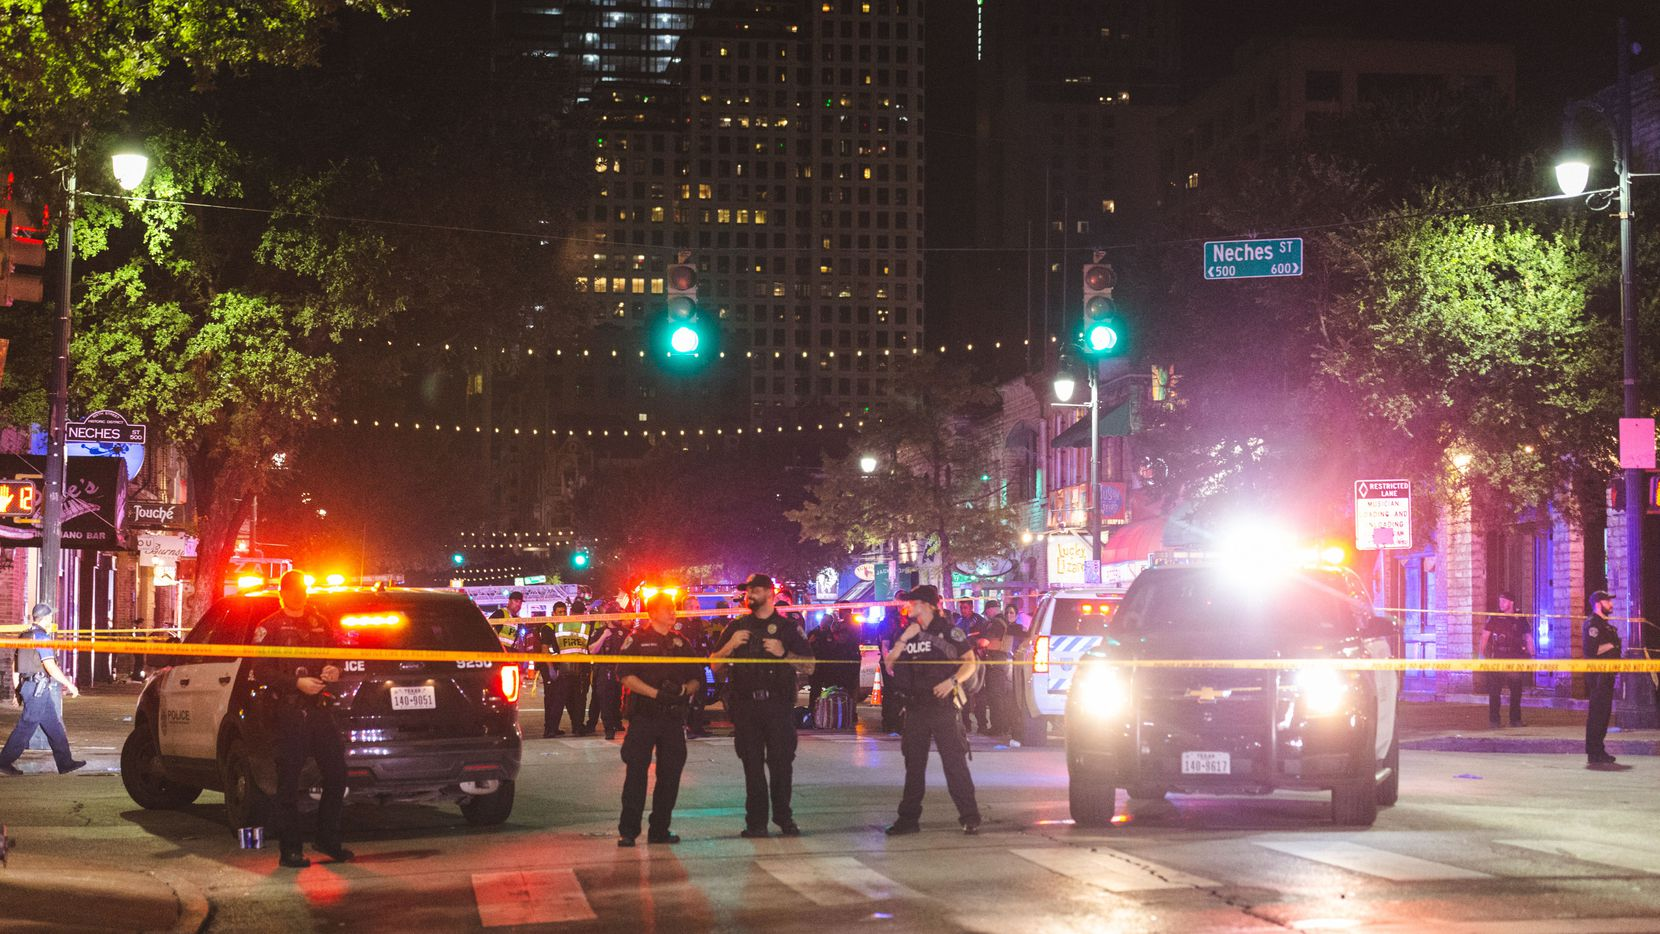 Saturday's shooting took place about 1:30 a.m. in the 400 block of East Sixth Street, a popular Austin entertainment district lined with bars and restaurants.